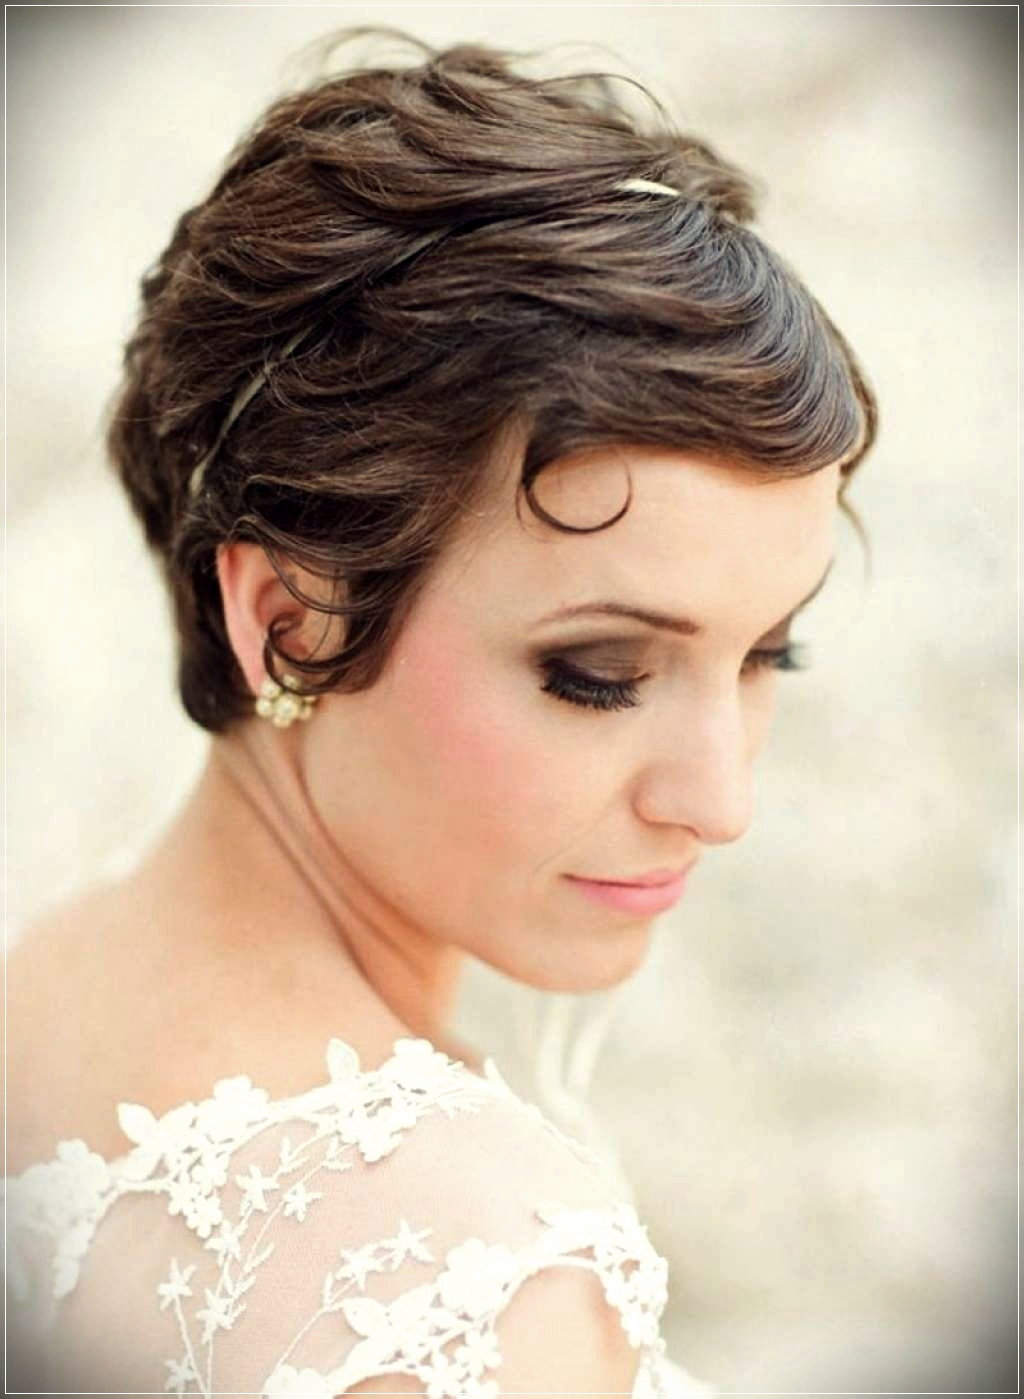 prom hairstyles for short hair 15 - Choose the perfect hairstyle for your short hair